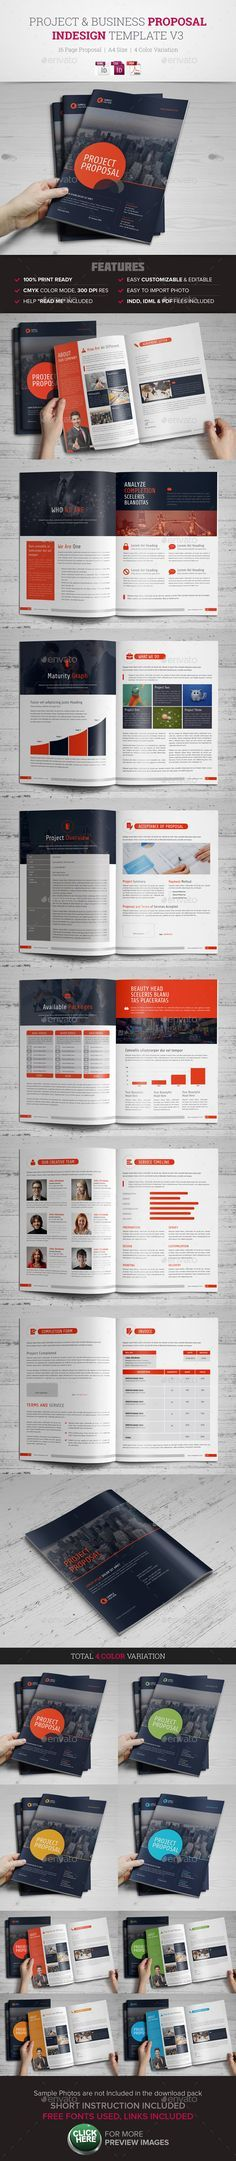 The 25+ best Business proposal template ideas on Pinterest - business proposals samples